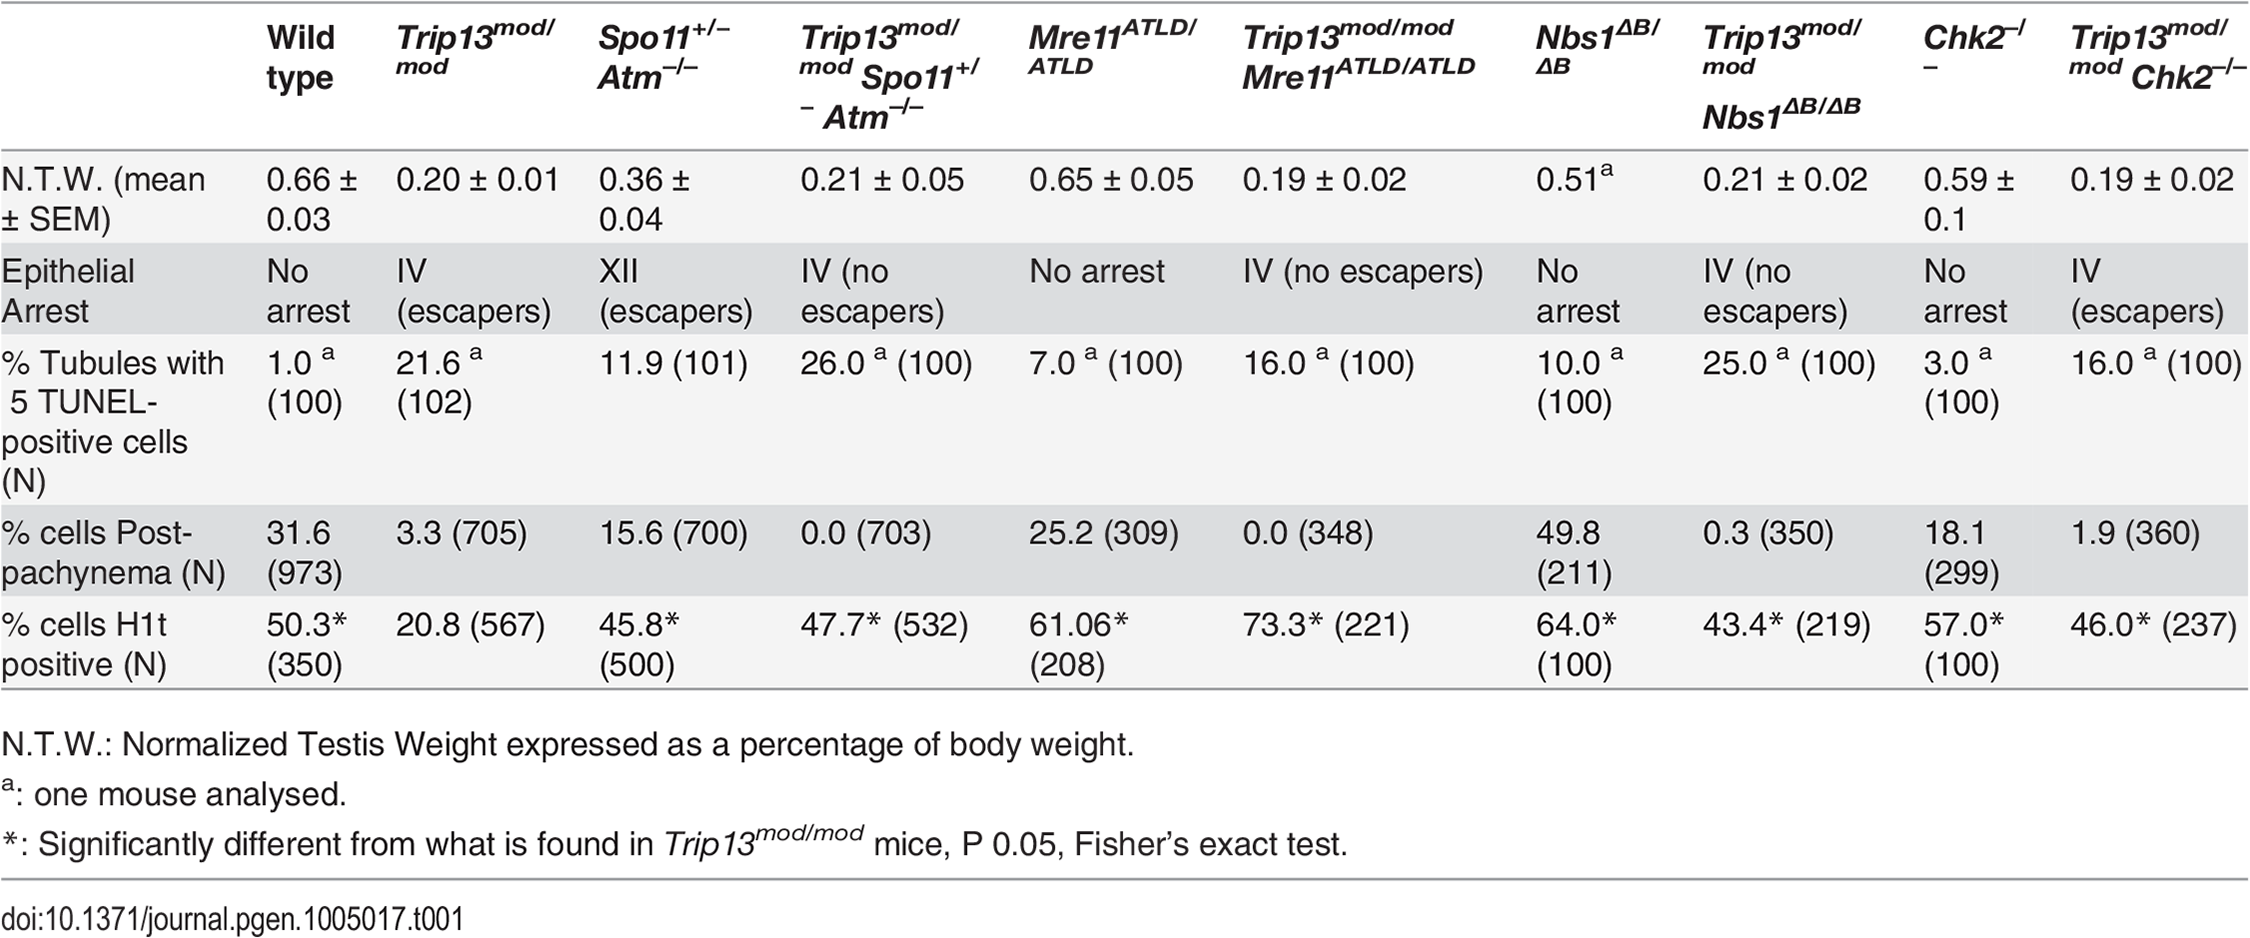 Testicular and meiotic phenotypes of wild-type and mutant mice.